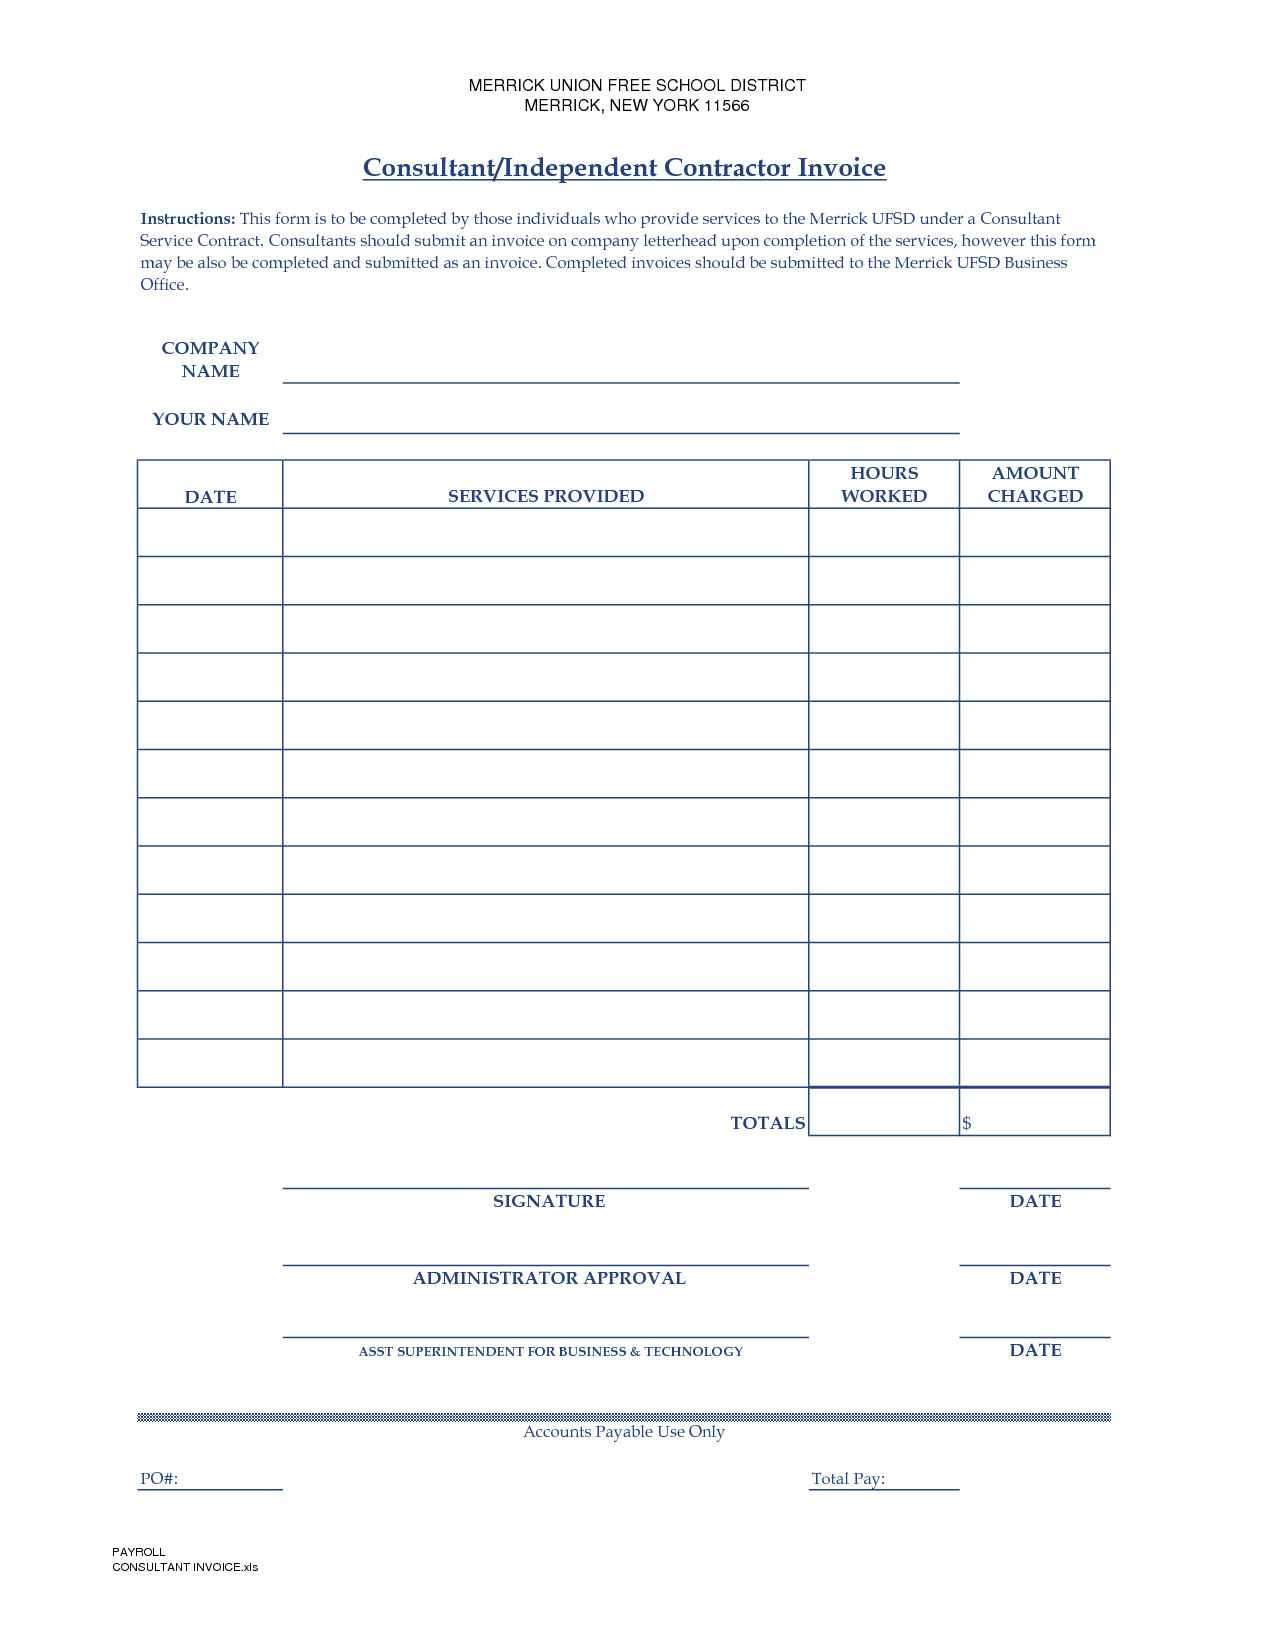 Independent Contractor Invoice Template Google Docs